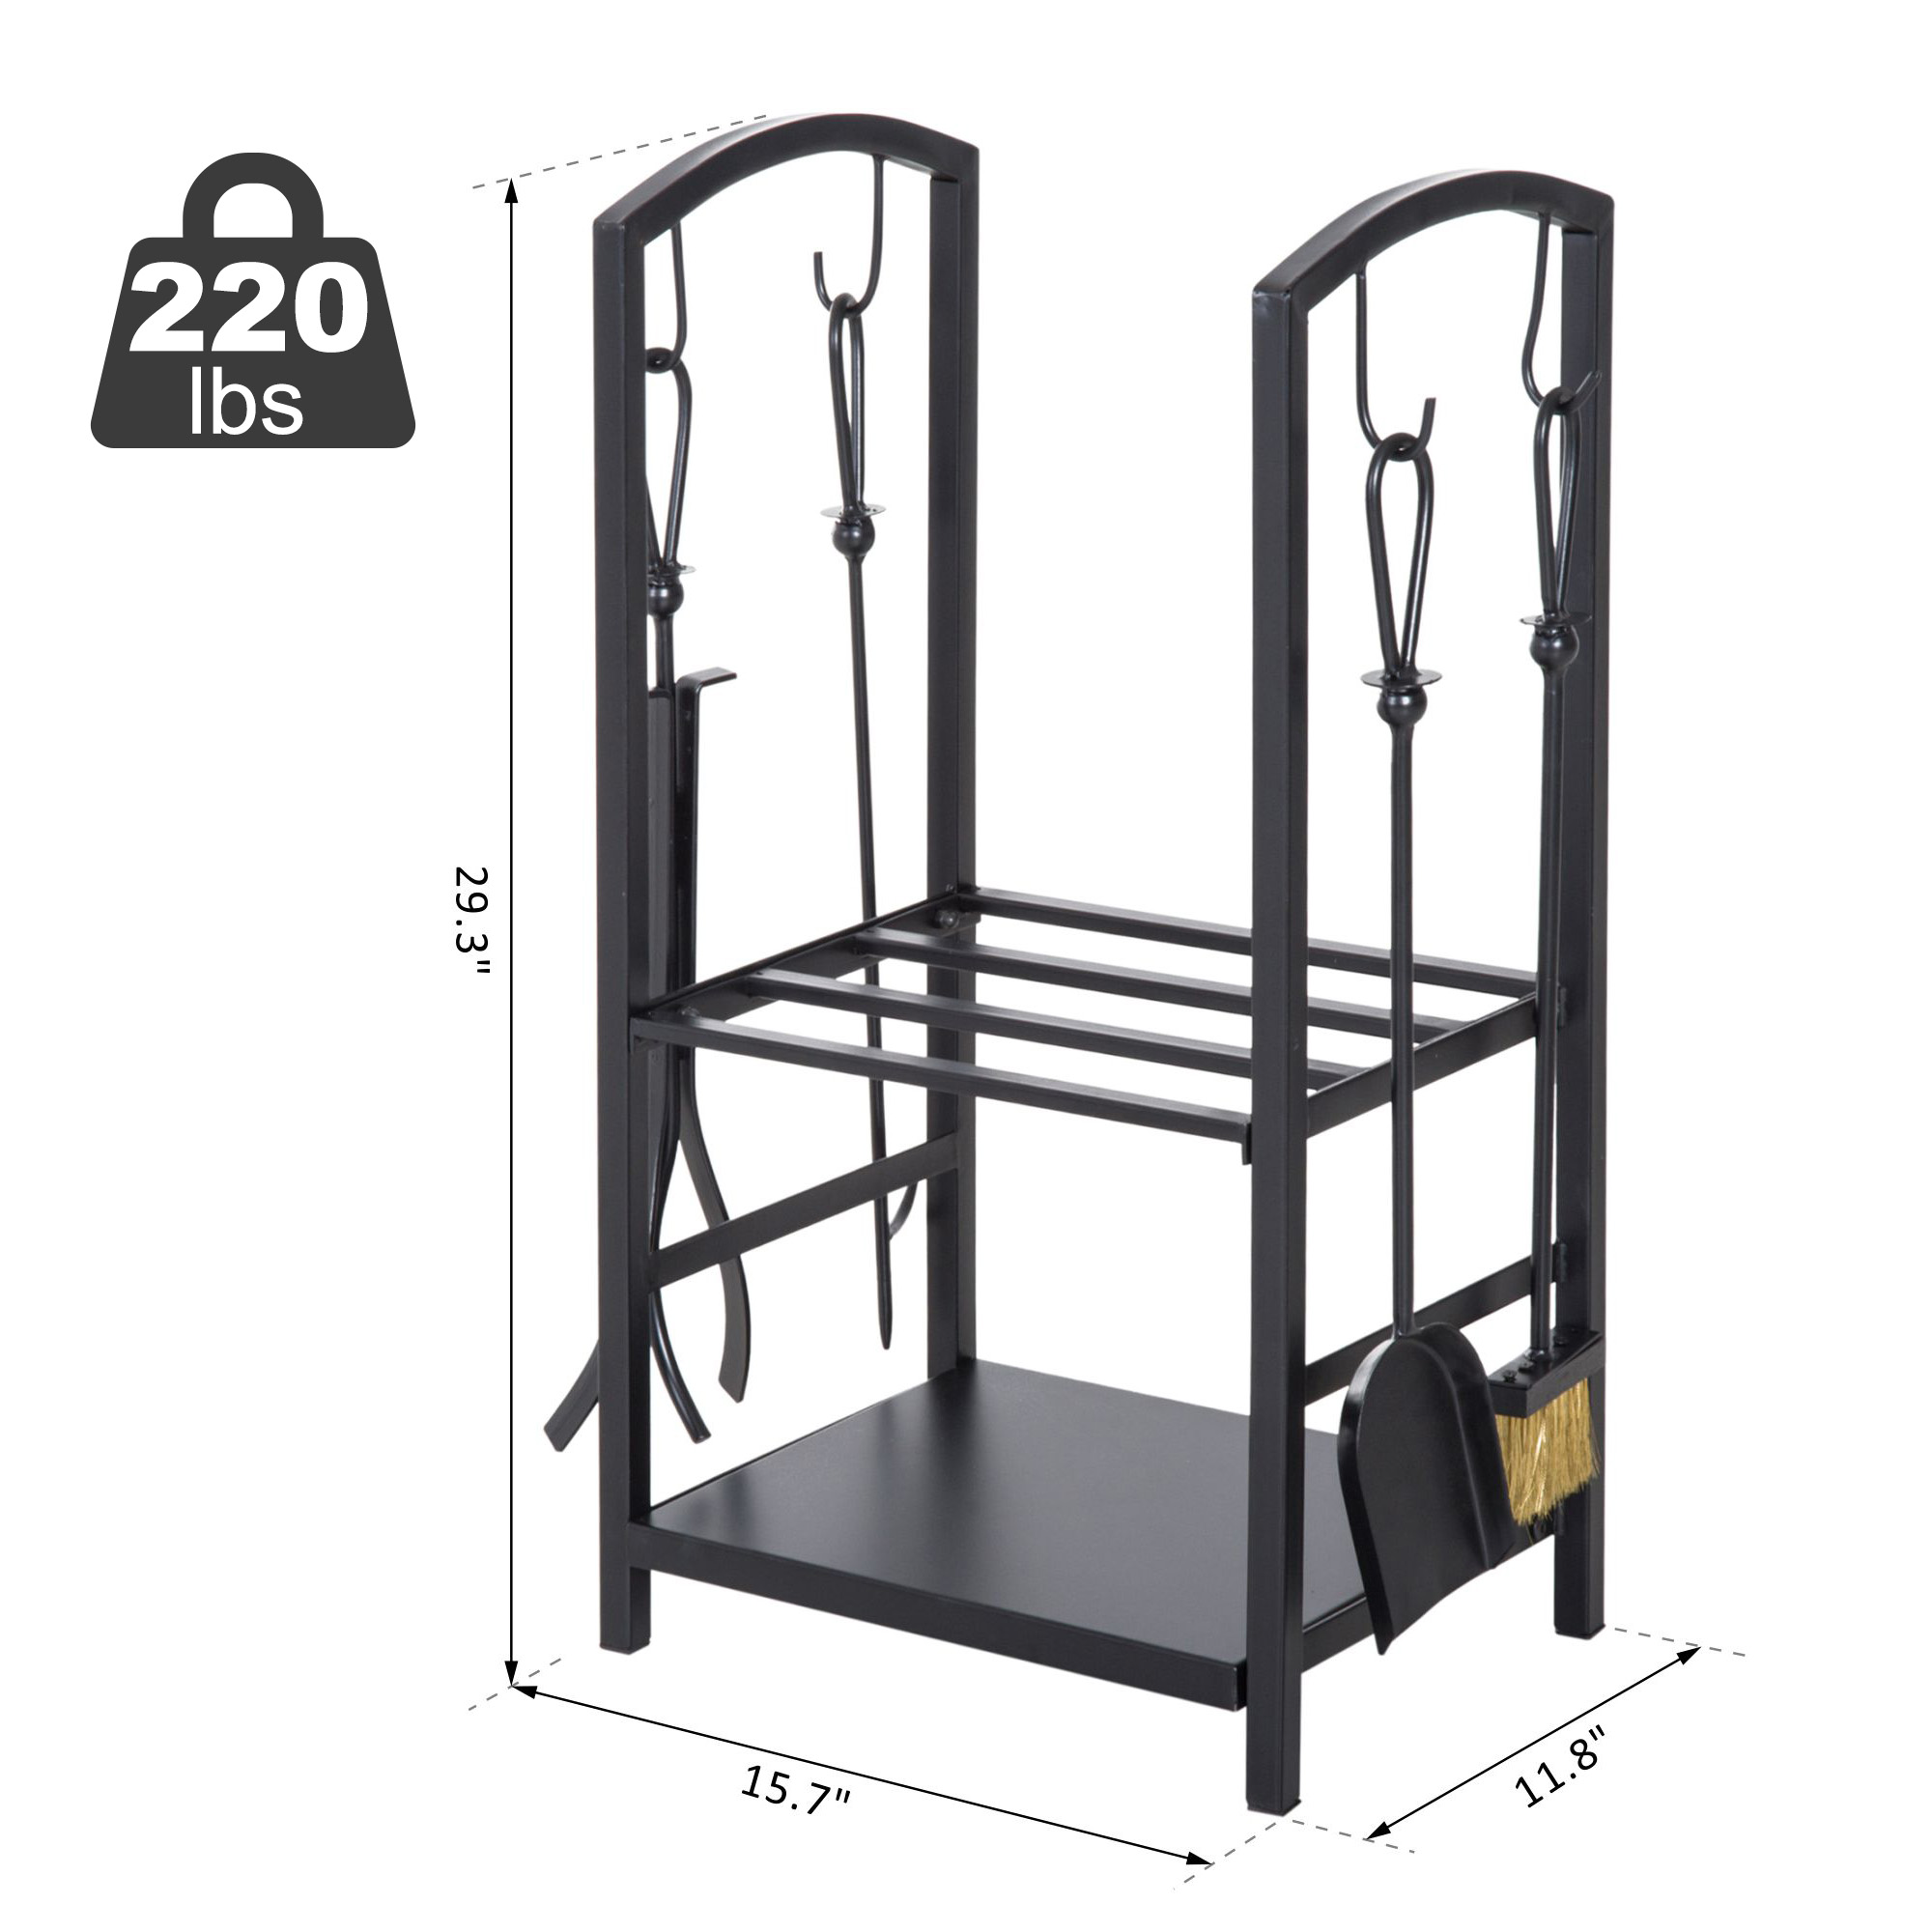 Heavy Duty Firewood Rack With Accessories Indoor Outdoor Log Holder Fire Wood Storage With 4 Tools Black Walmart Canada